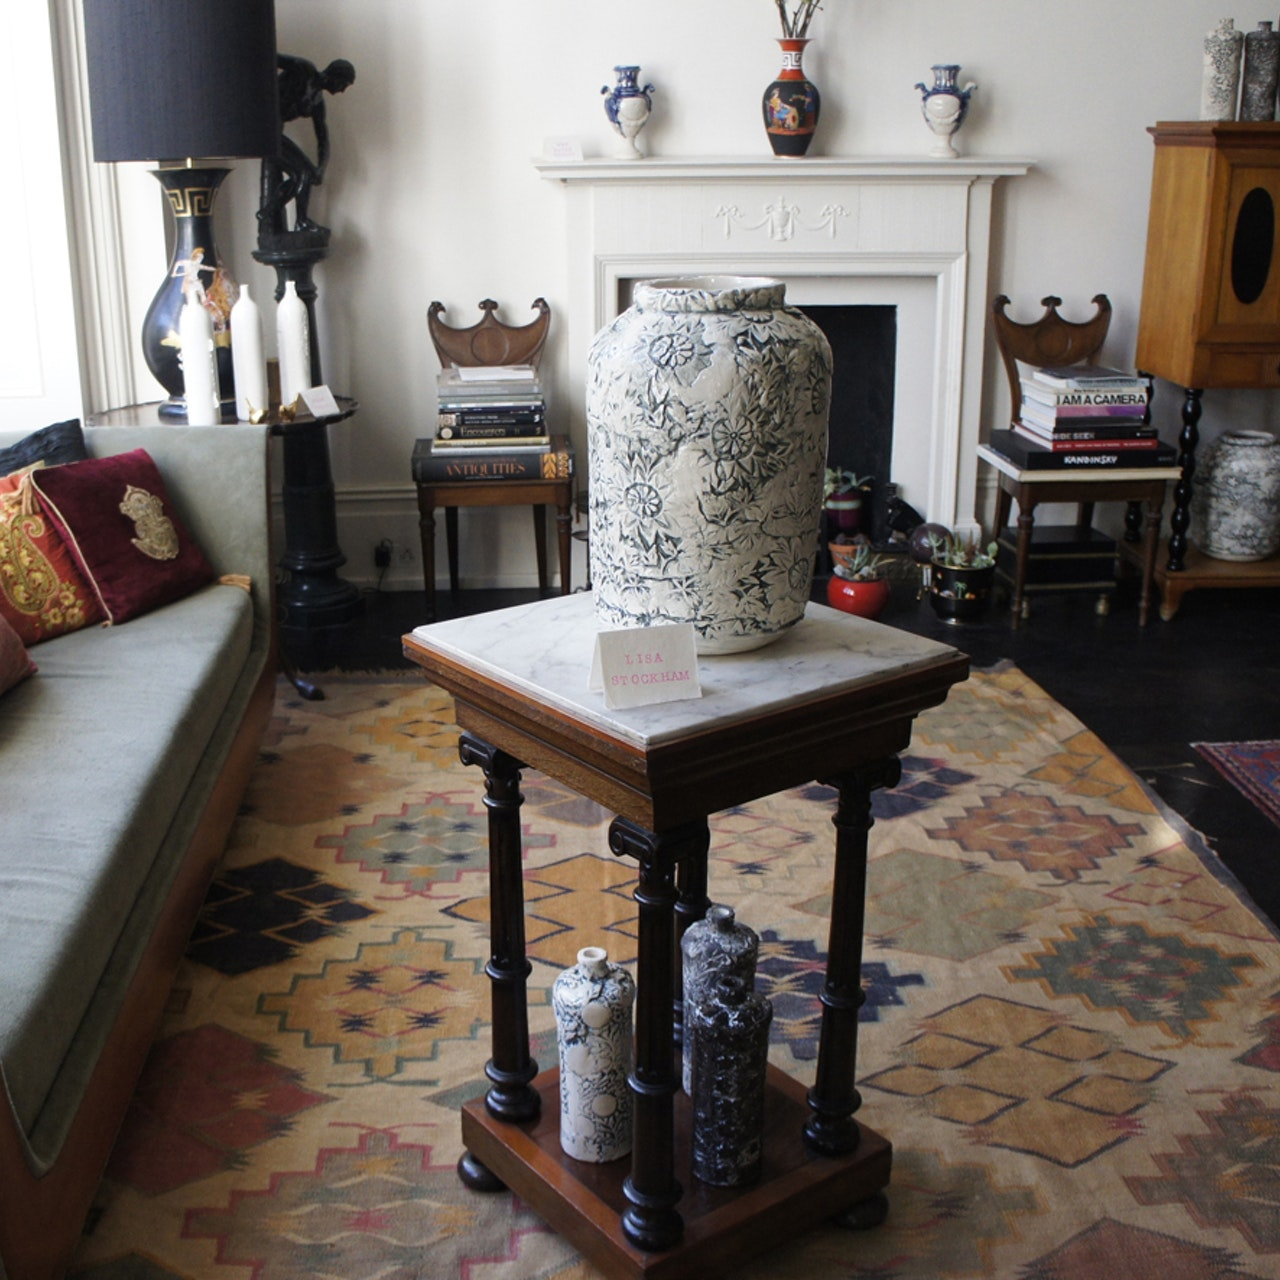 'Something old, something new' pop up exhibition at collectors home